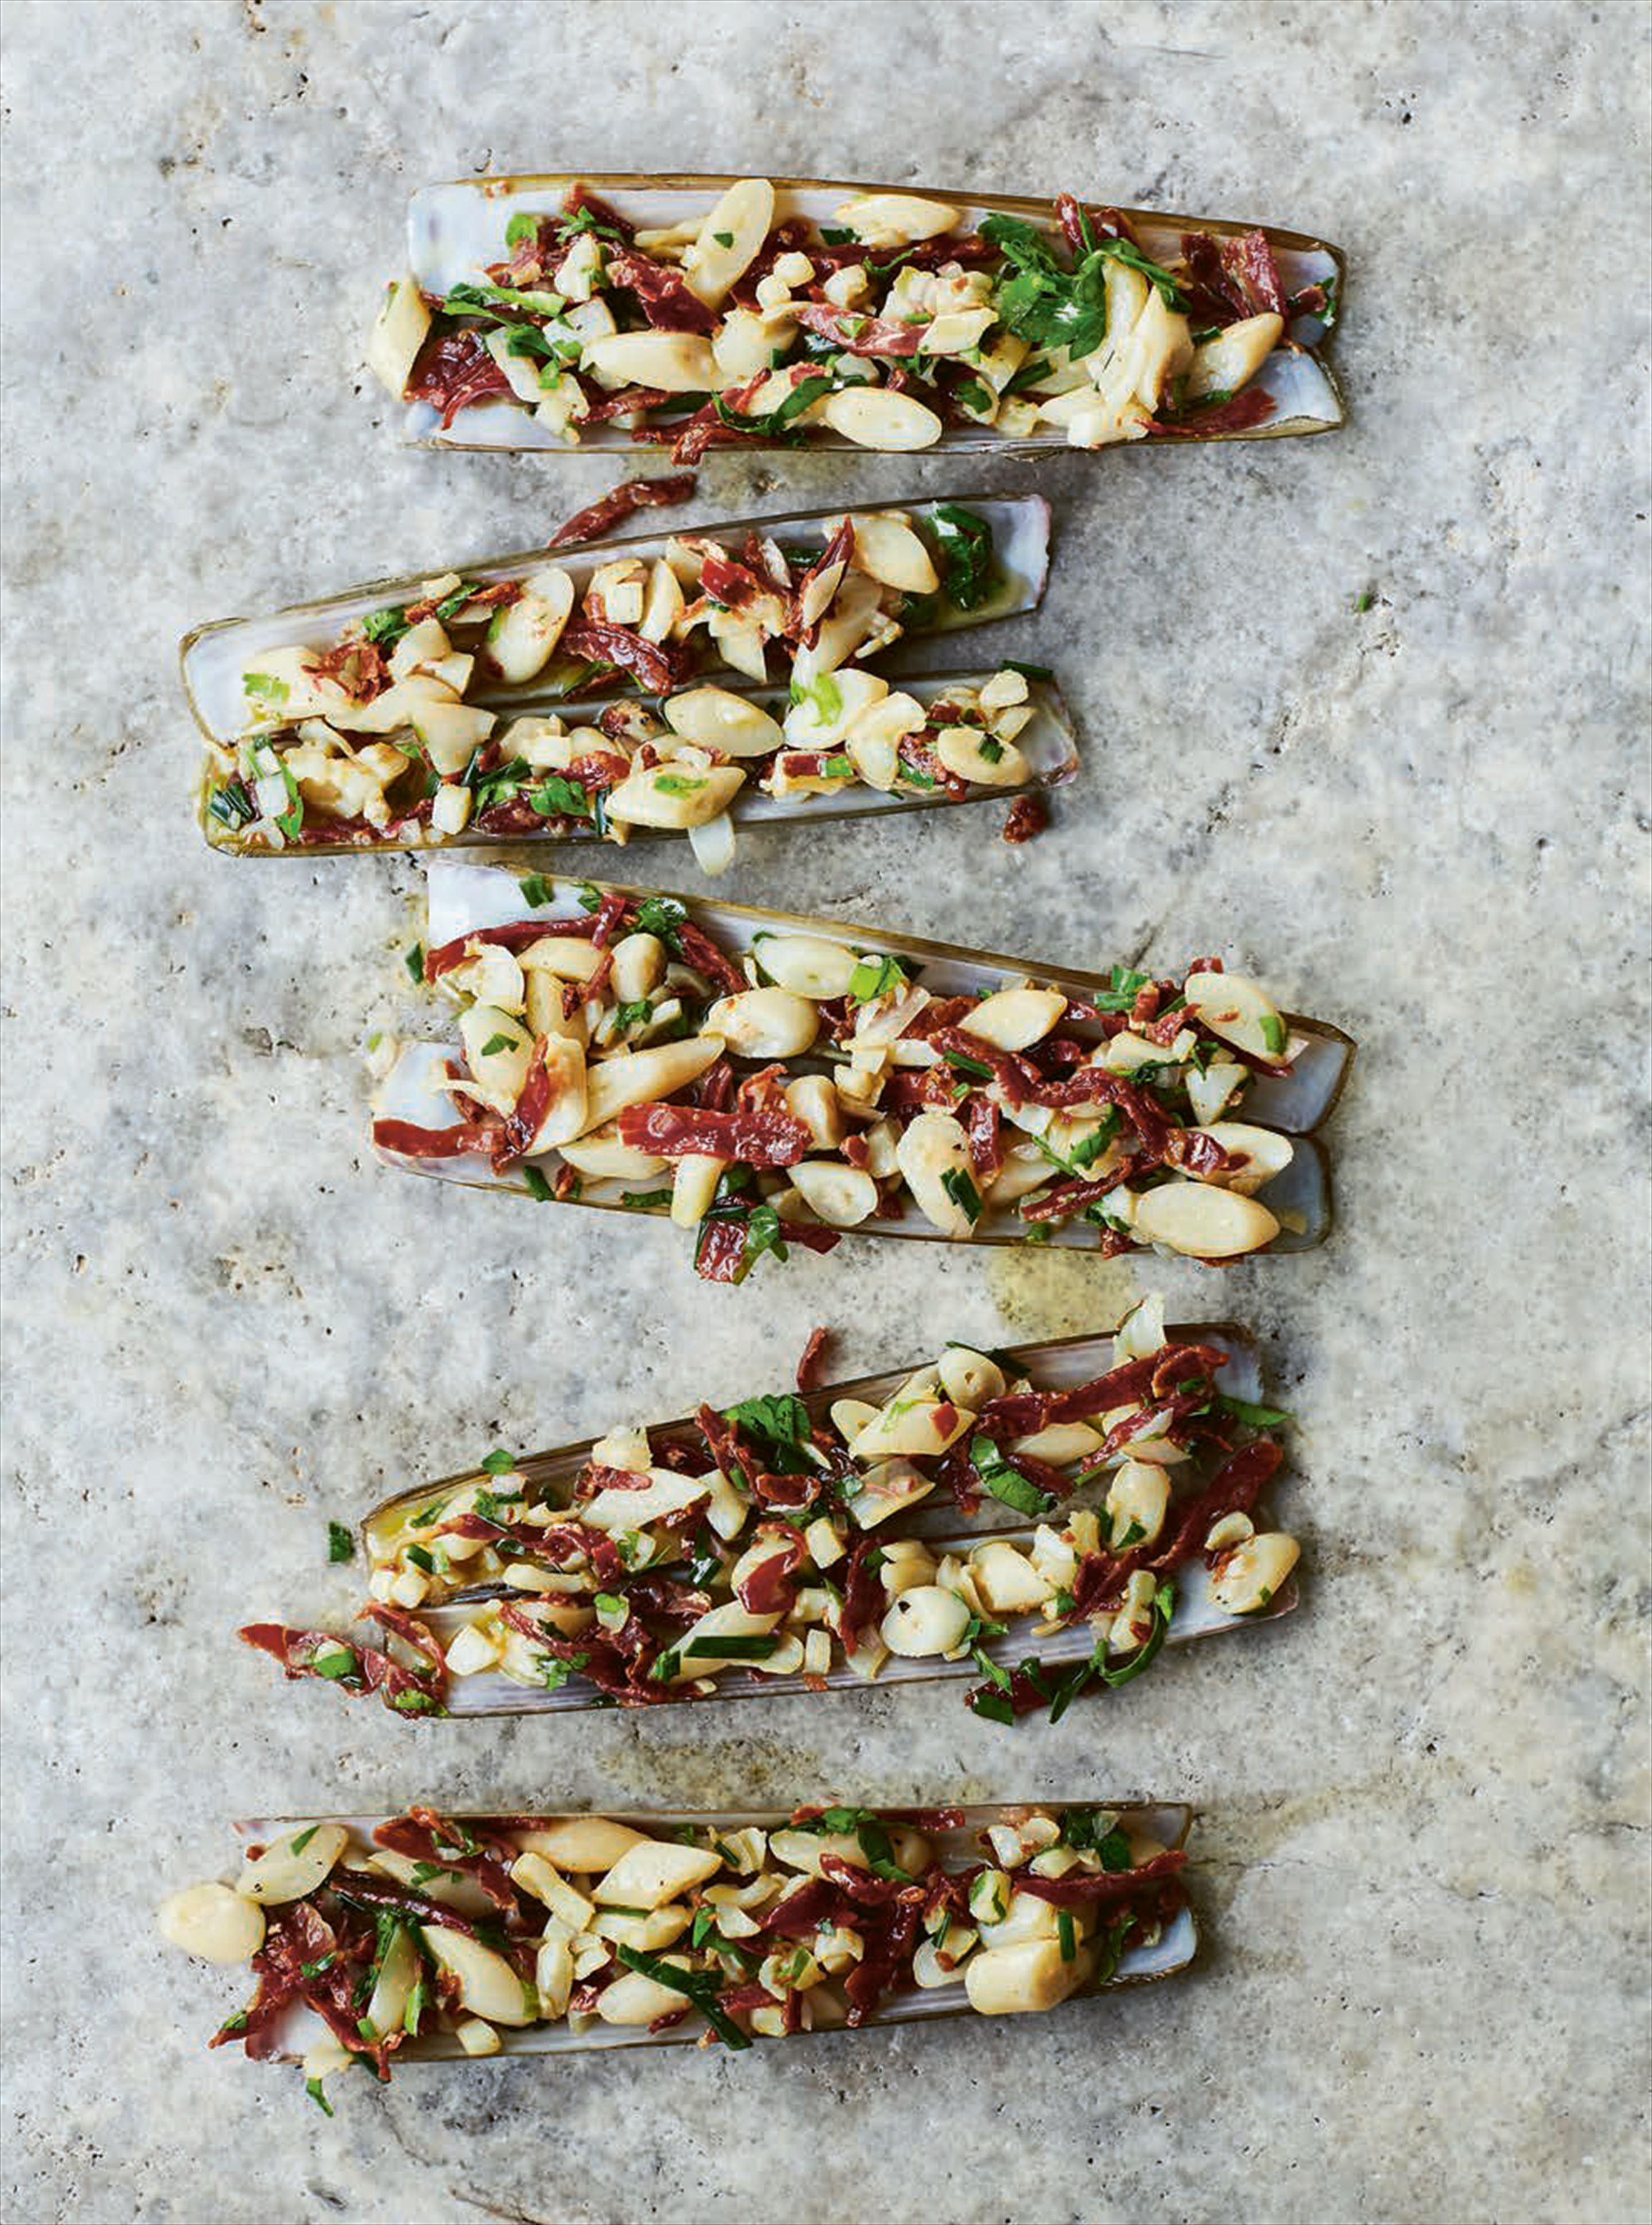 Razor clams with jamón & cava vinaigrette